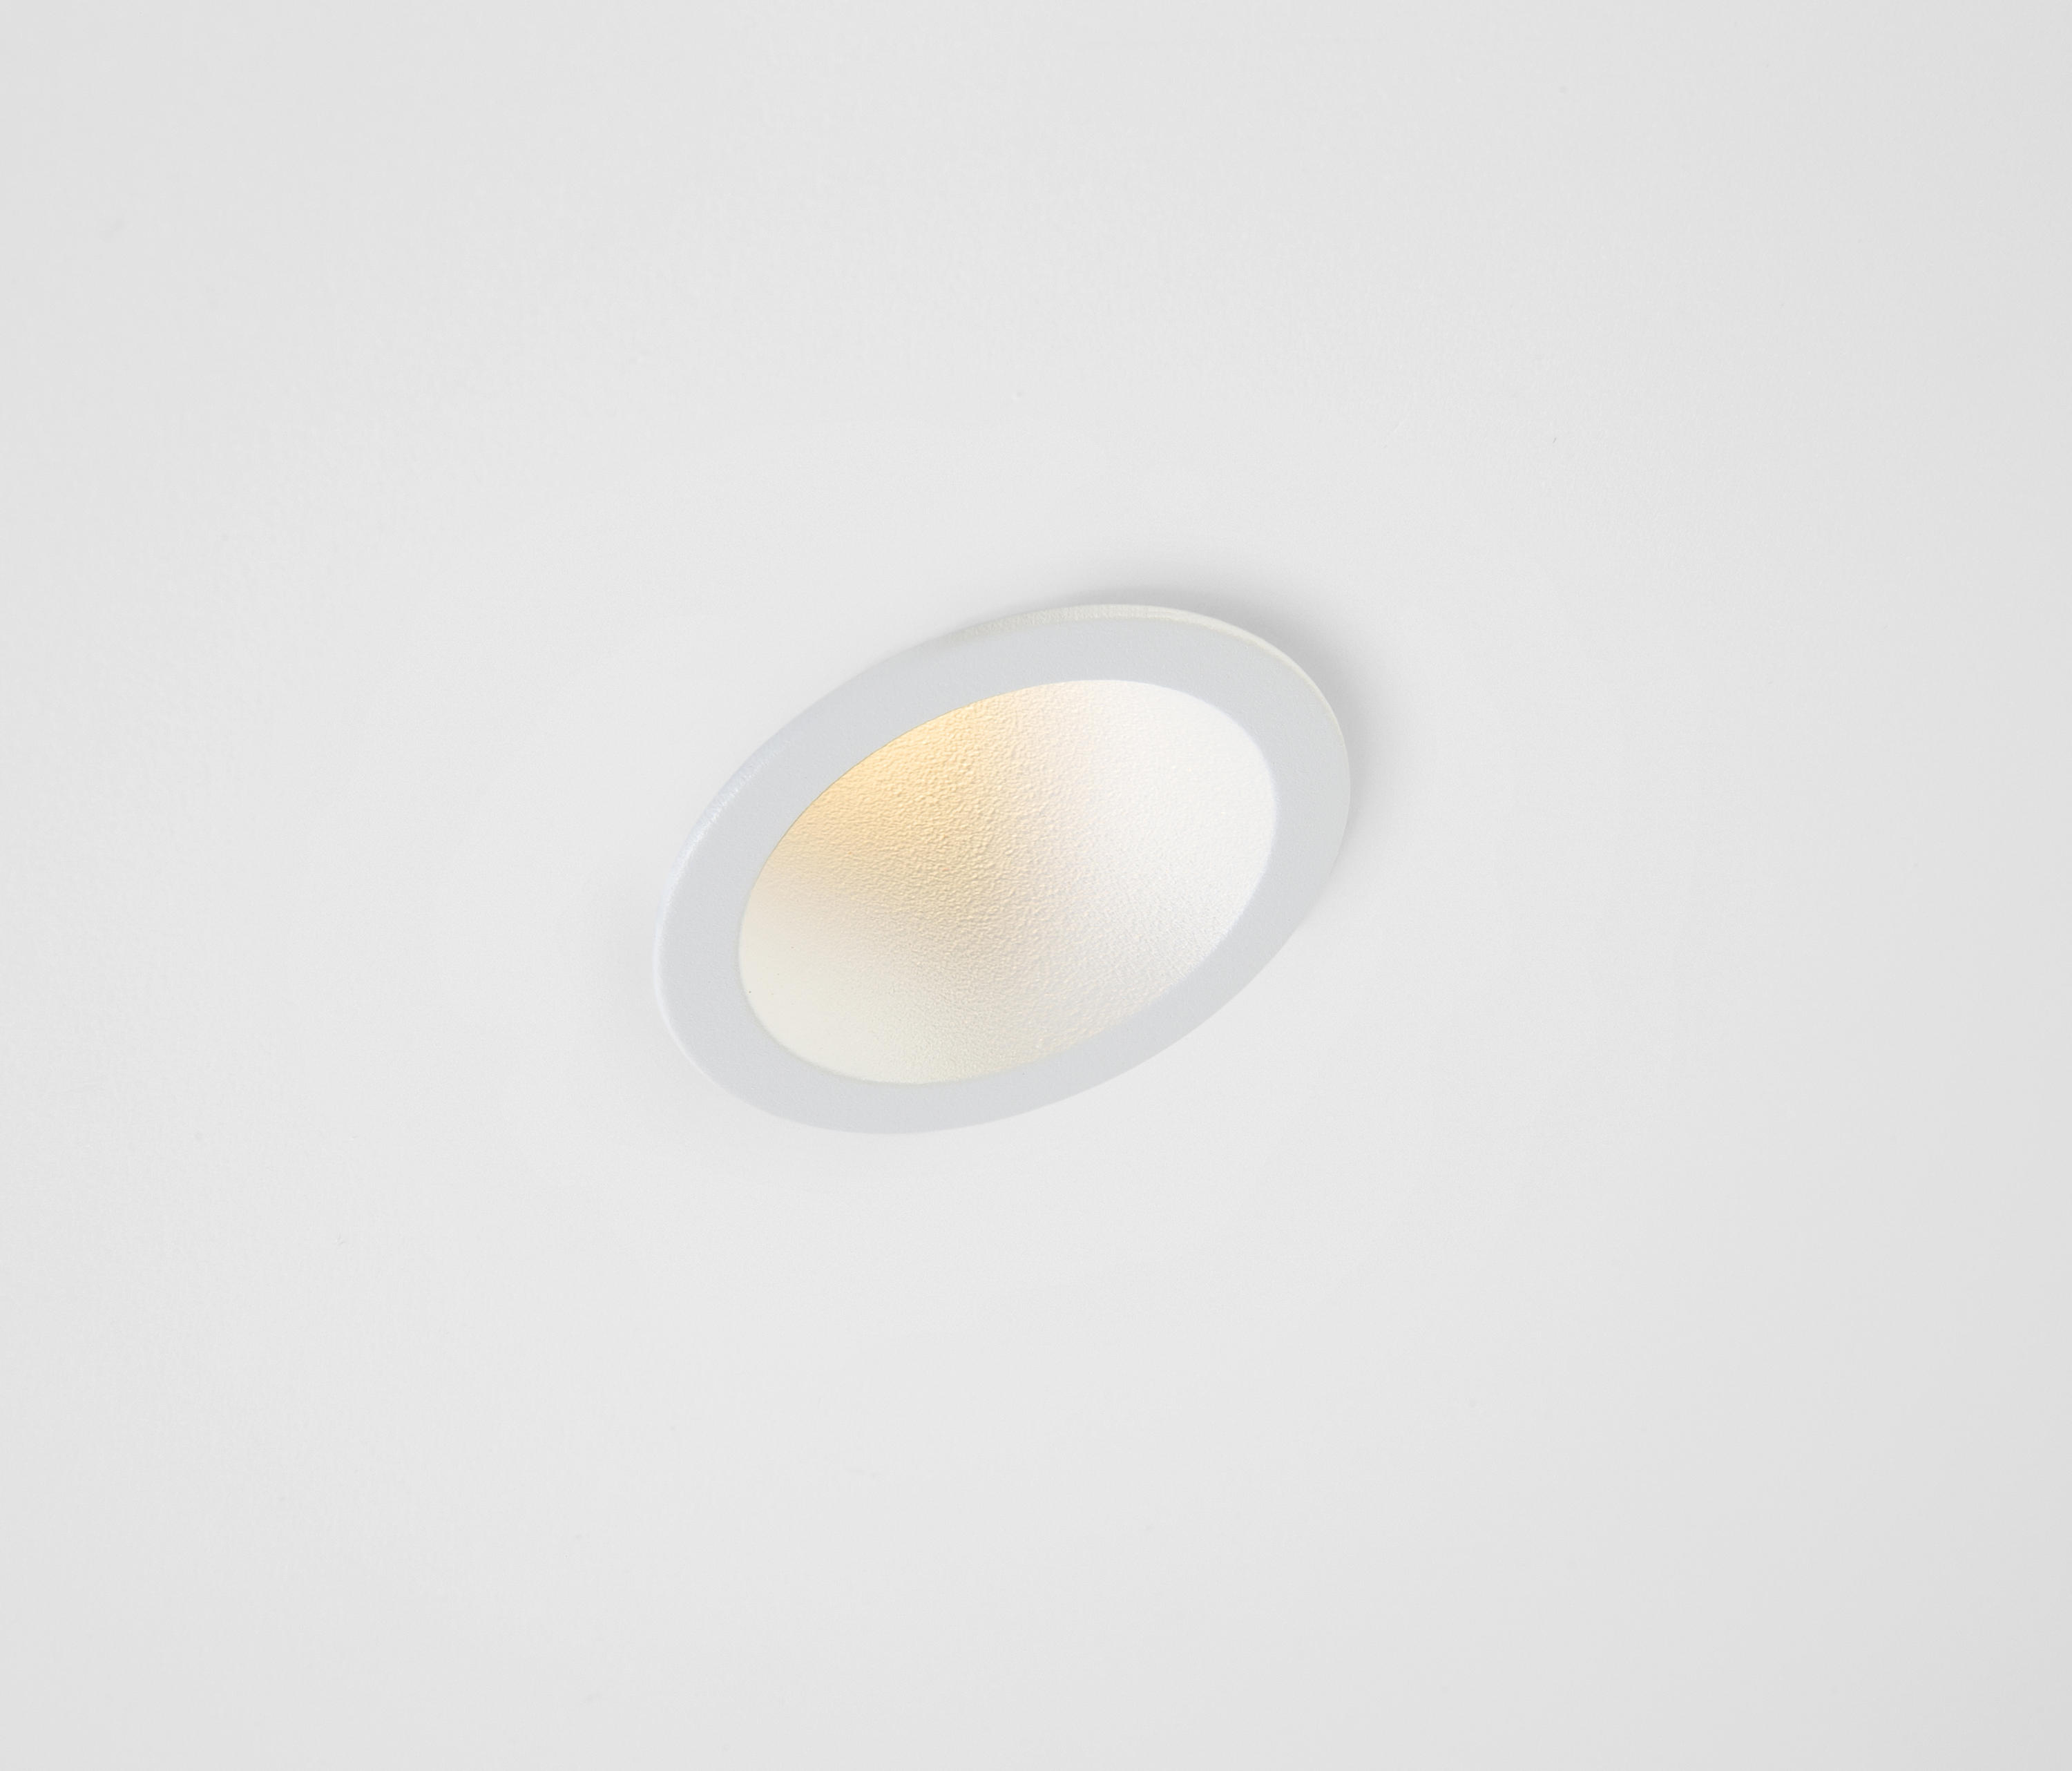 Modular Lotis Ge Asy Ip55 Lights Led From 48 Recessed Wall XukZiP